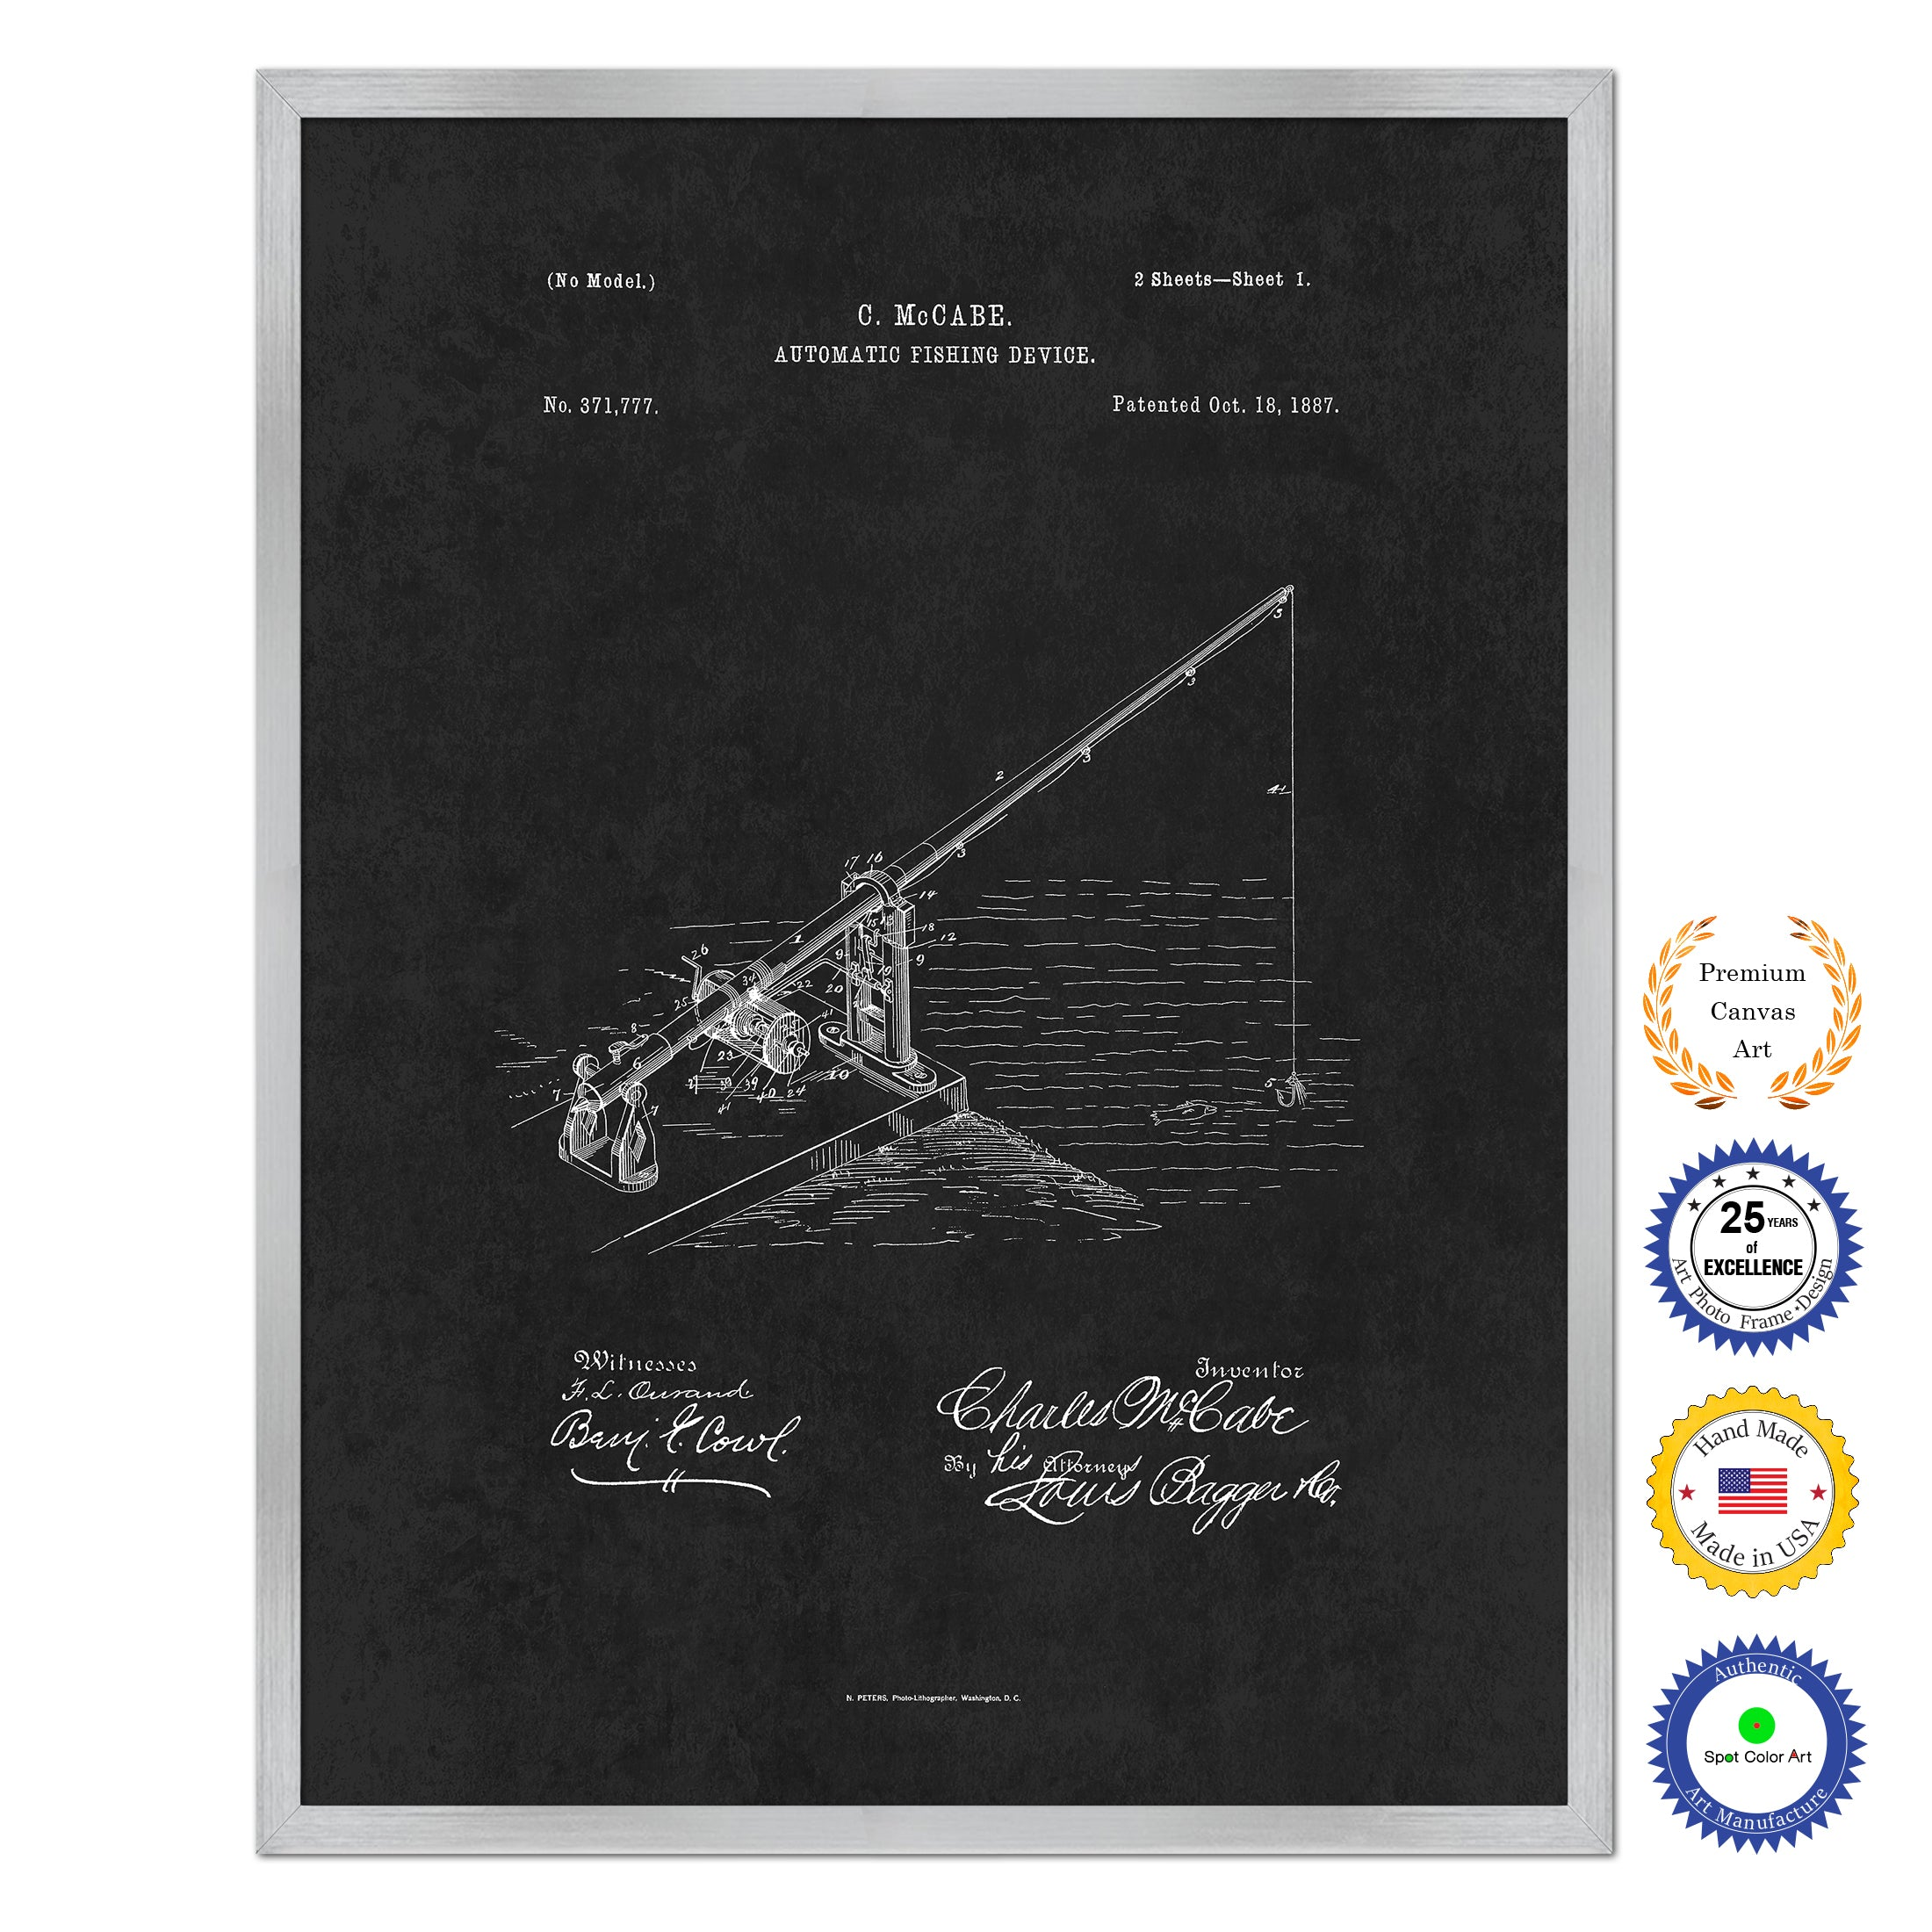 1887 Fishing Automatic Fishing Device Antique Patent Artwork Silver Framed Canvas Home Office Decor Great for Fisherman Cabin Lake House